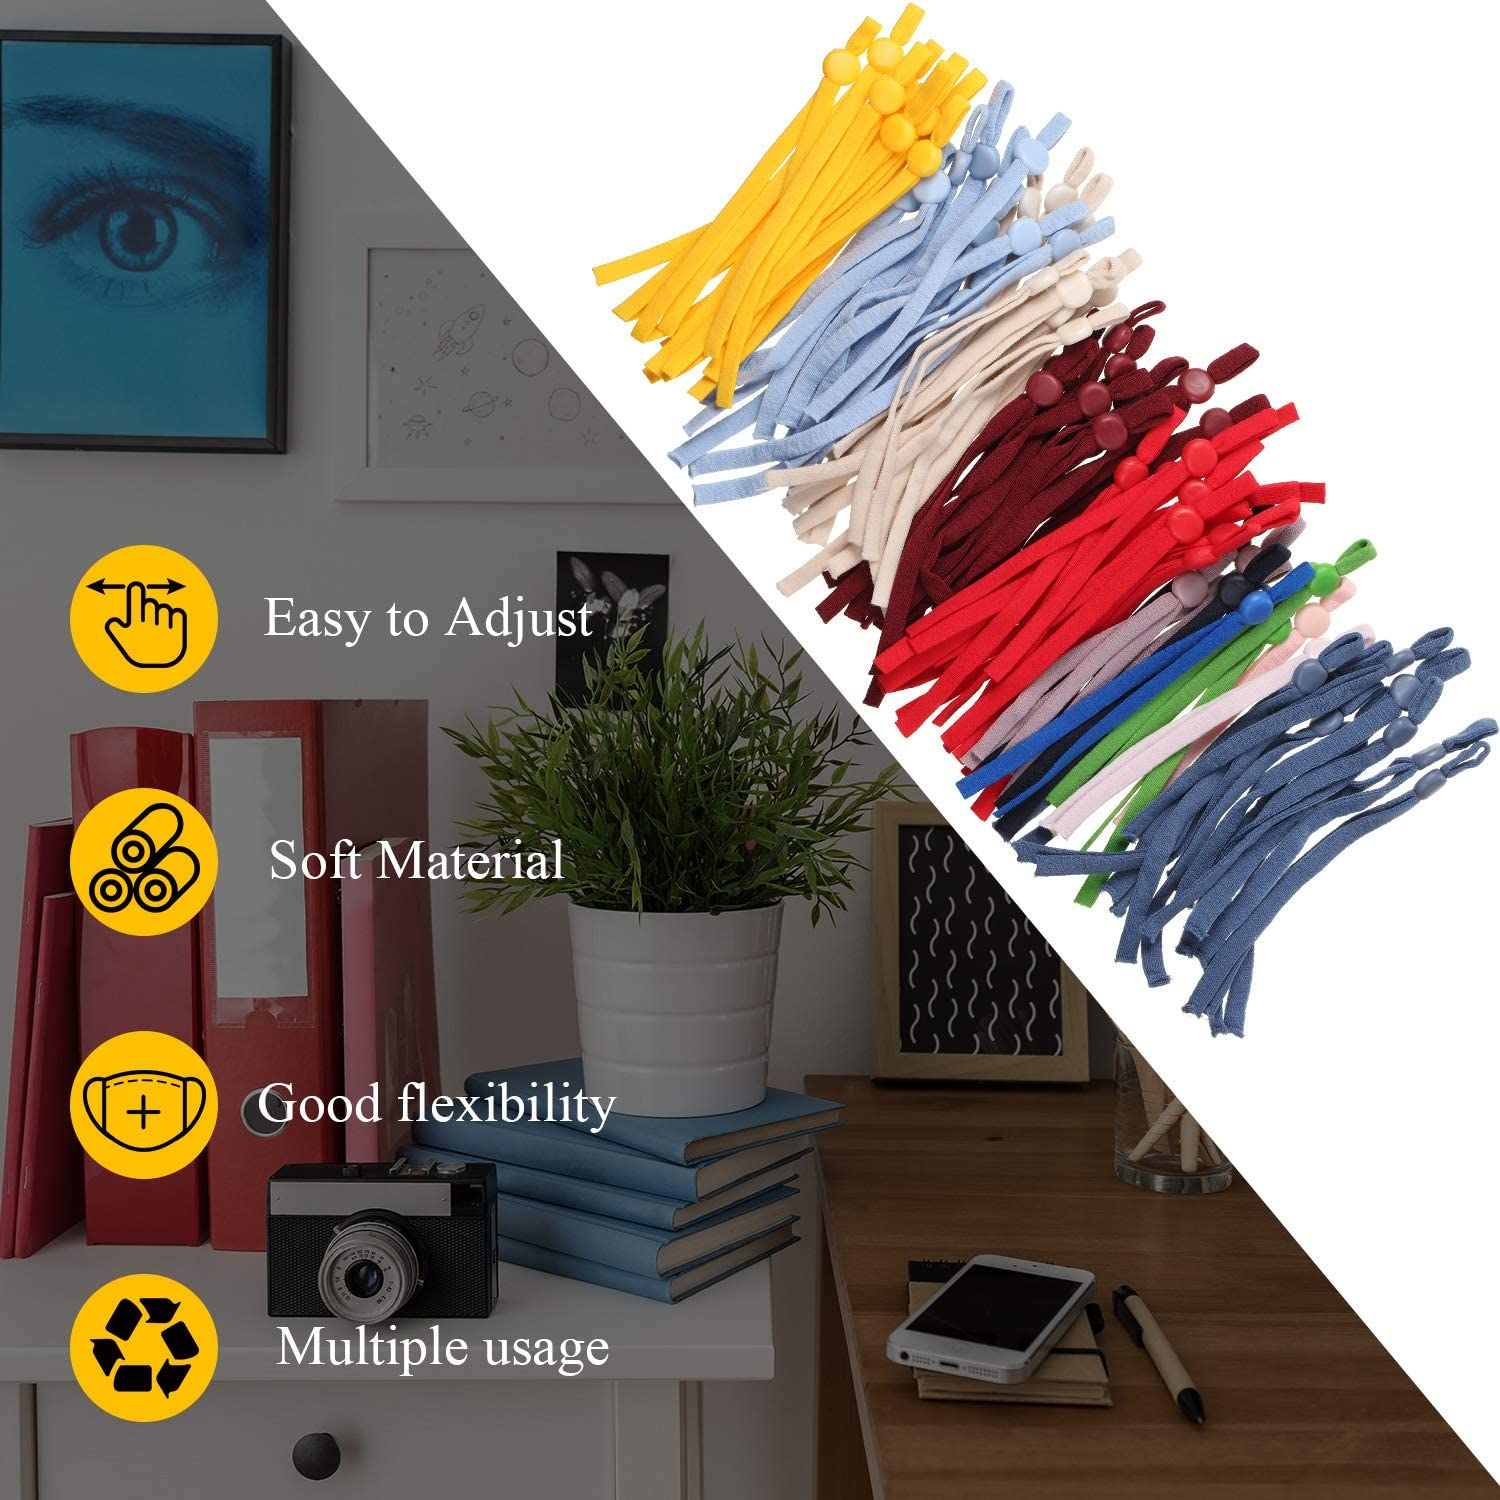 12 Colors 120 Pieces Elastic String Bands with Adjustable Buckle Stretchy Ear Band Strap Elastic Cord Bands Earloop Anti-Slip Strap for DIY Sewing Making Supplies